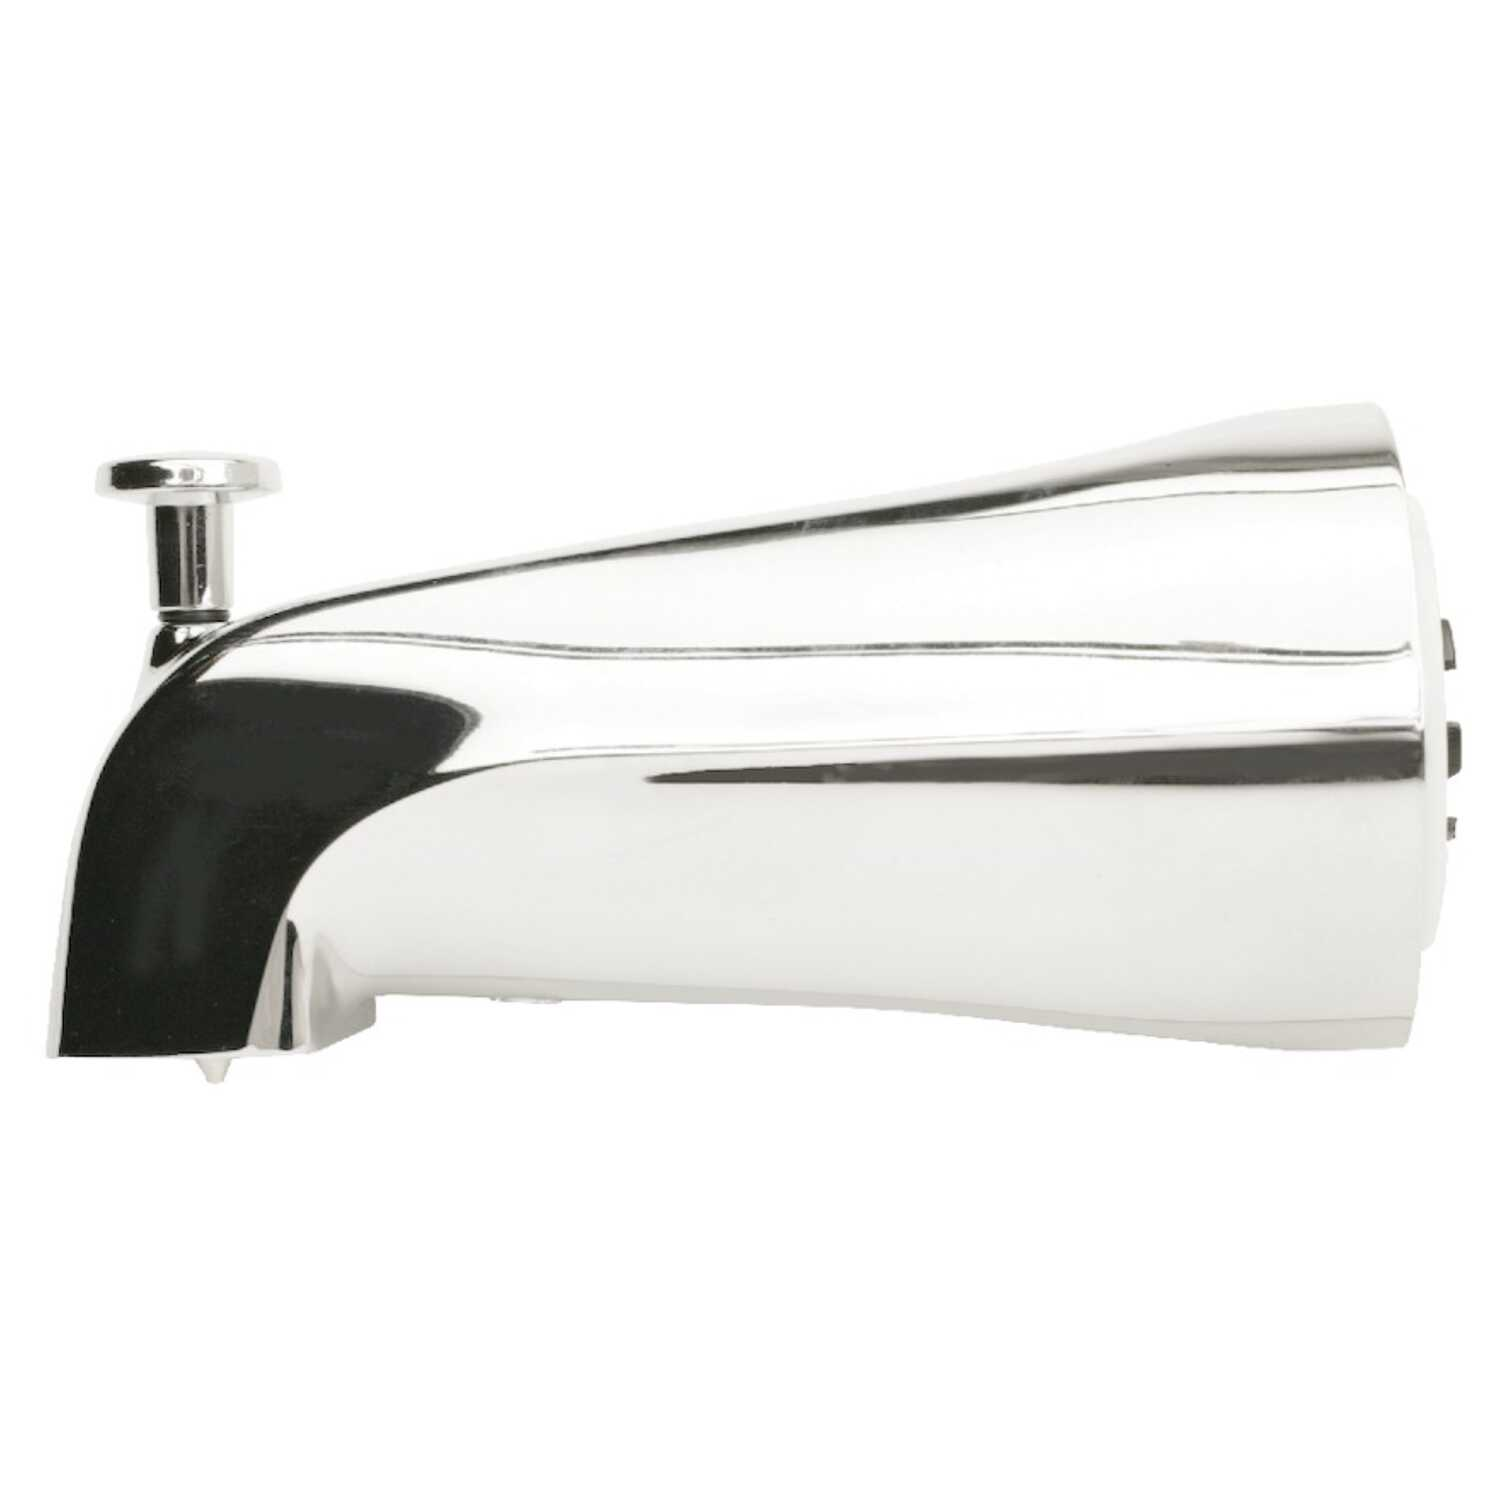 Plumb Pak  Bathtub Diverter Spout  1  N/A  Chrome Finish Metal Material